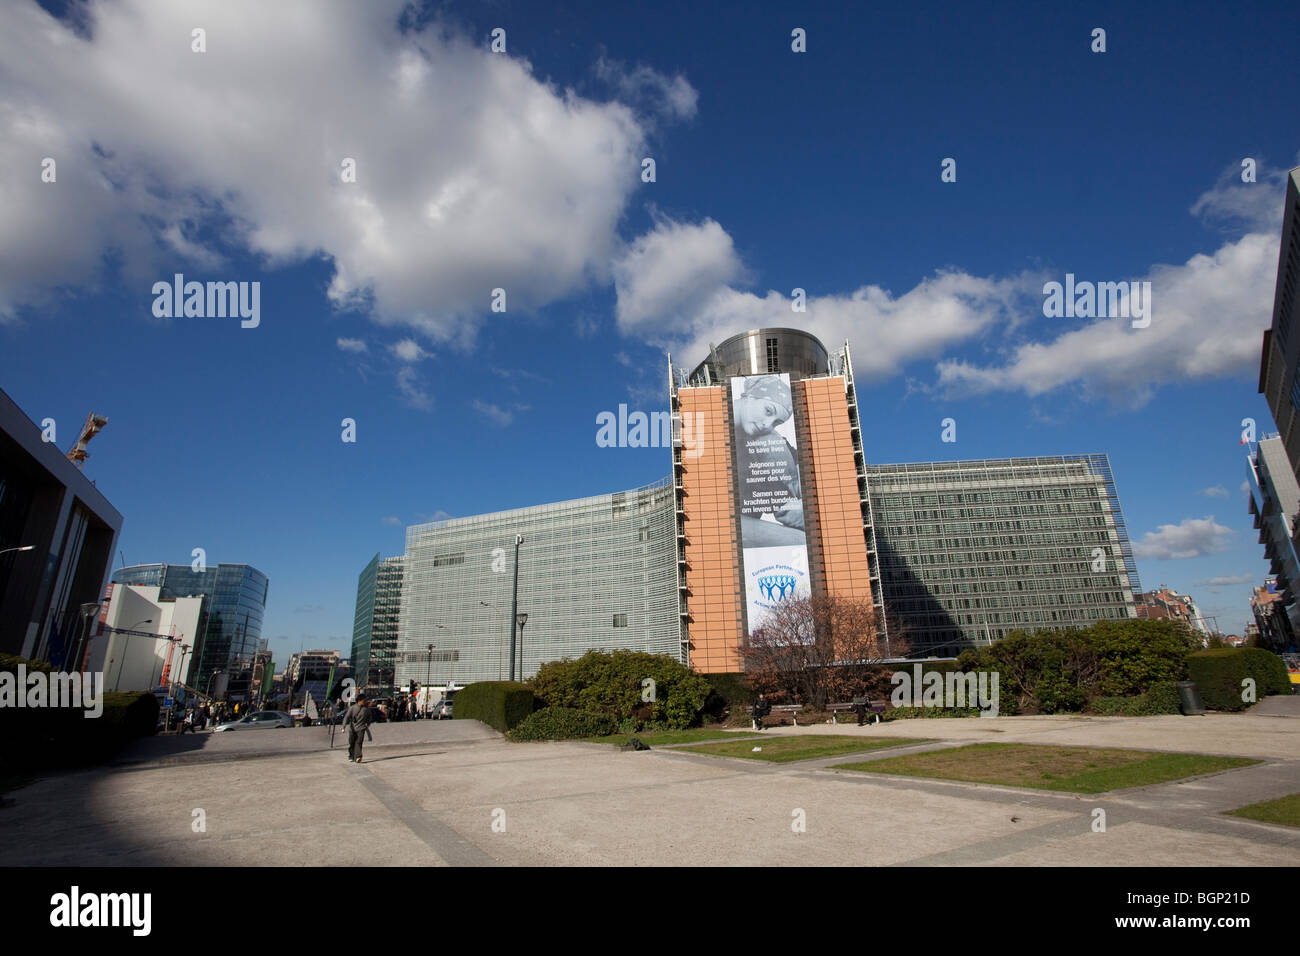 View of the Berlaymont building, the European Commission headquarters in Brussels, taken from the Schuman roundabout. - Stock Image